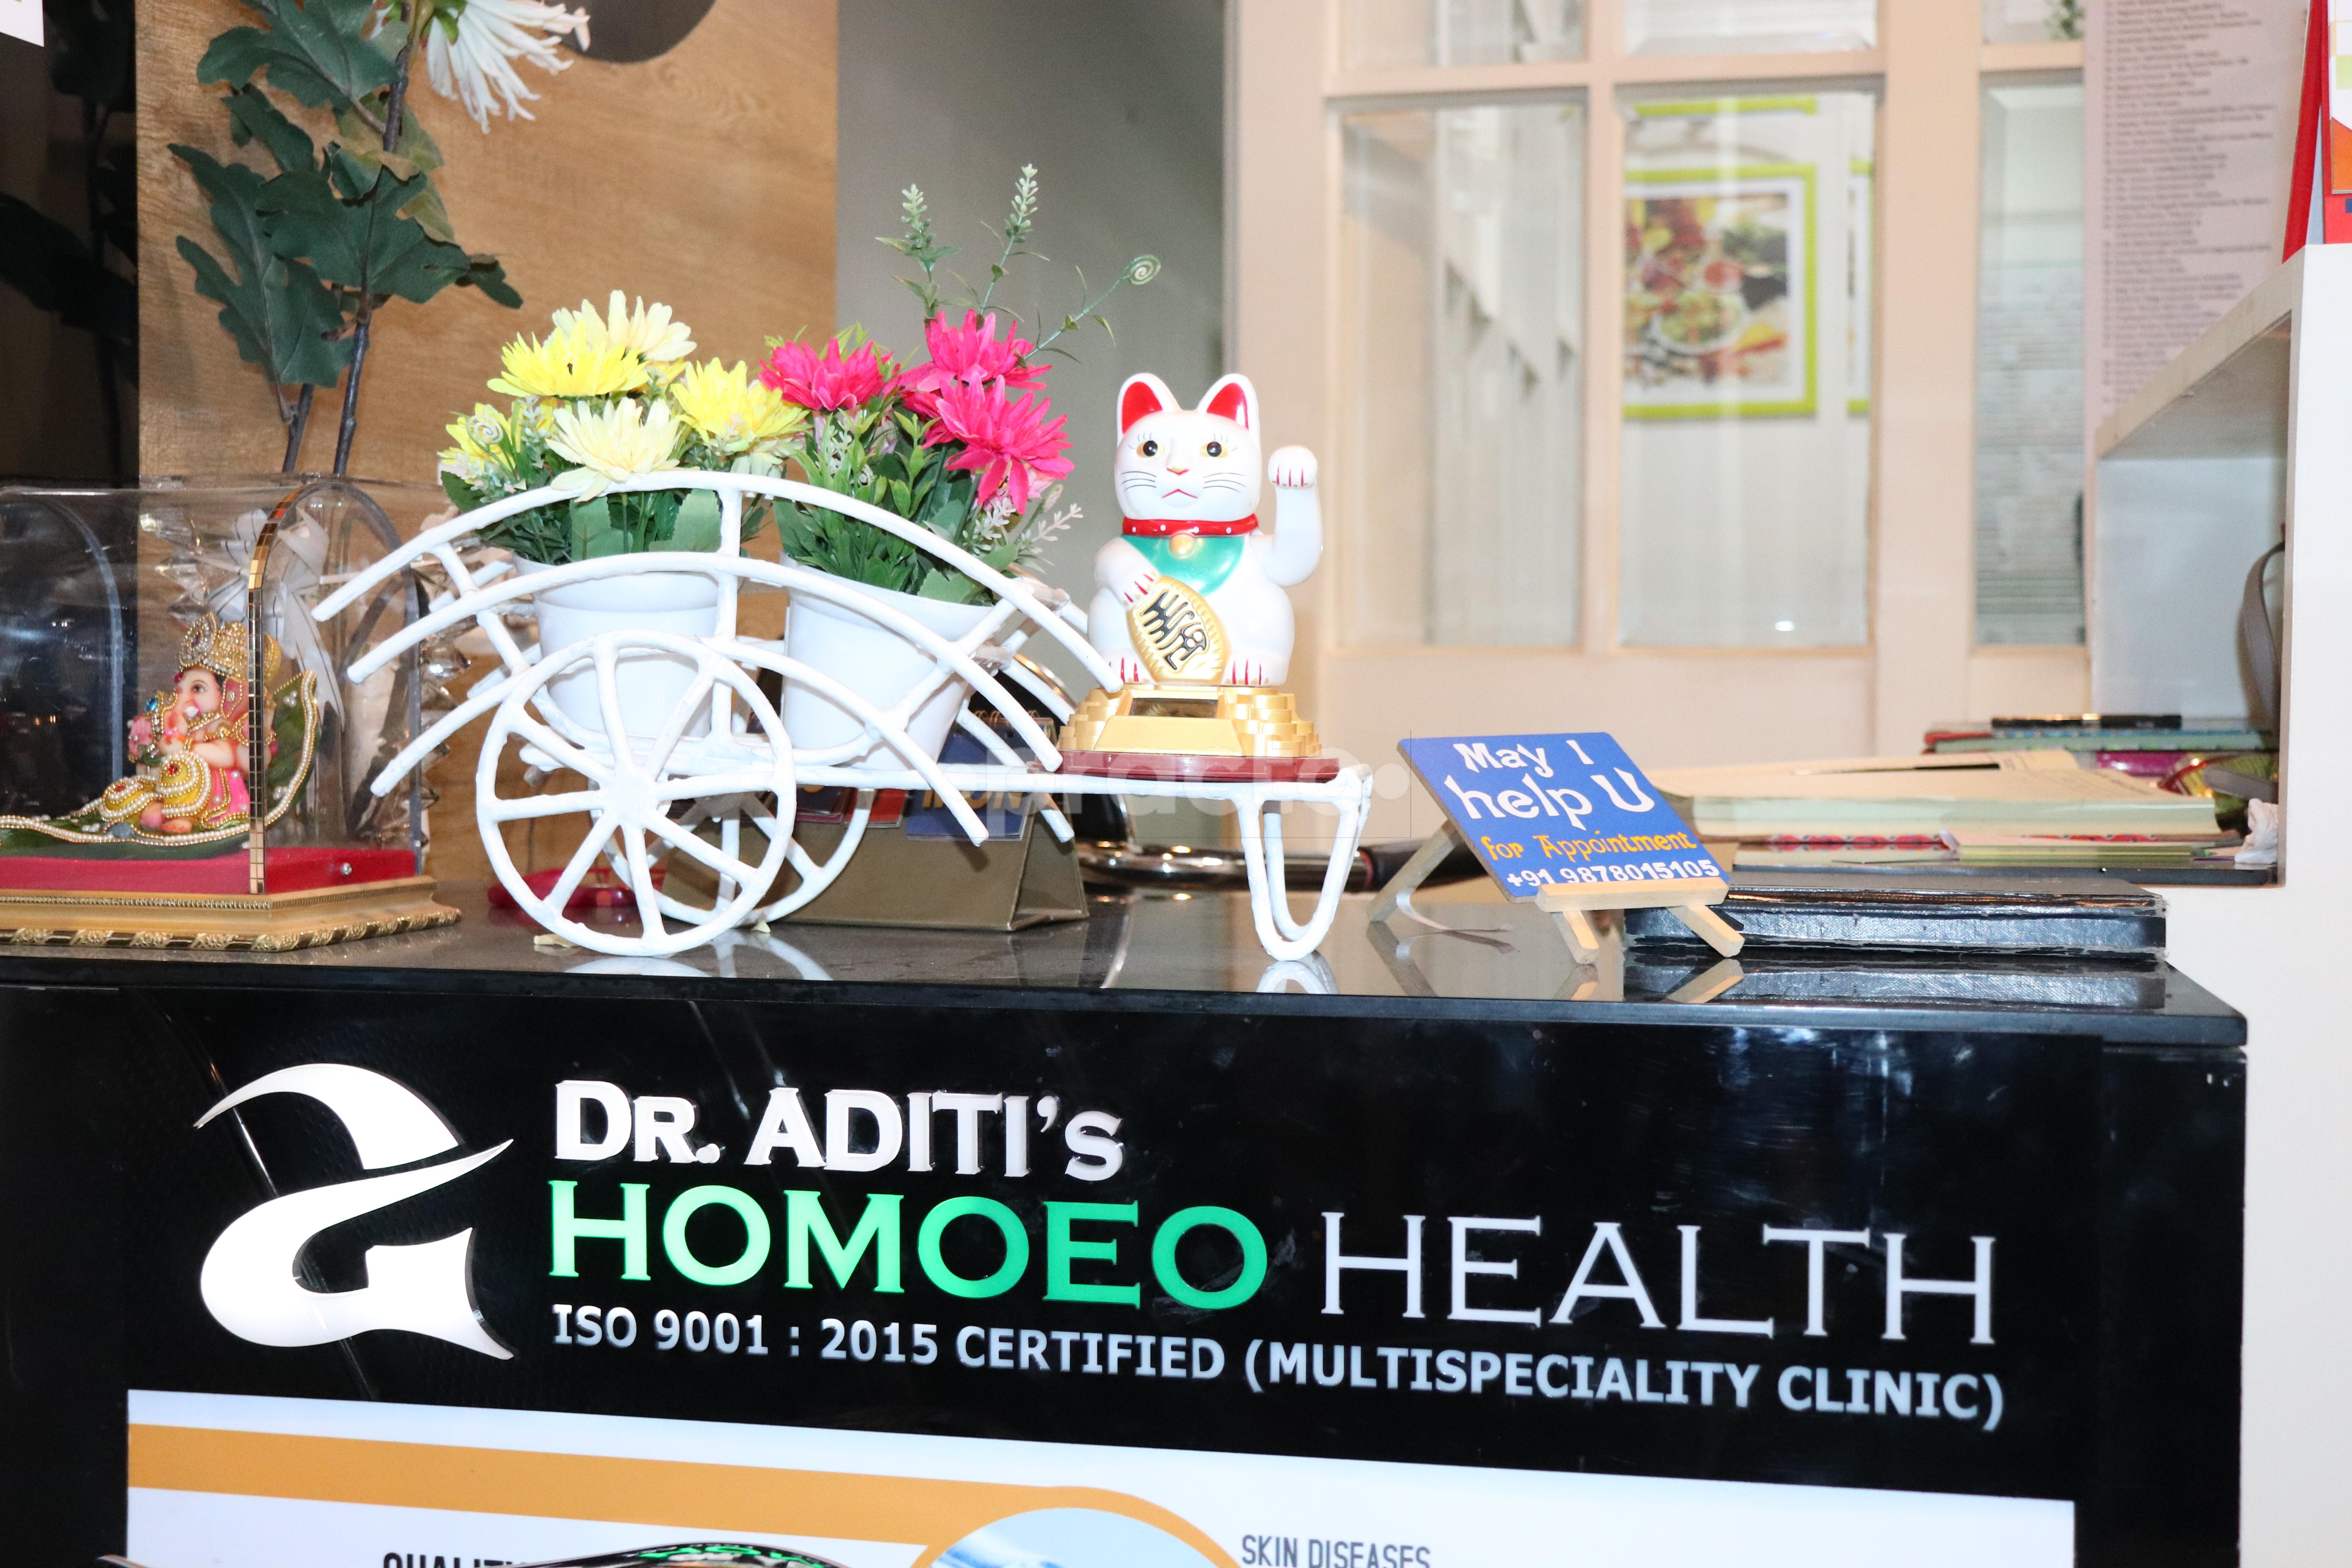 Dr ADITI's HOMOEO HEALTH, Multi-Speciality Clinic in Sector 47